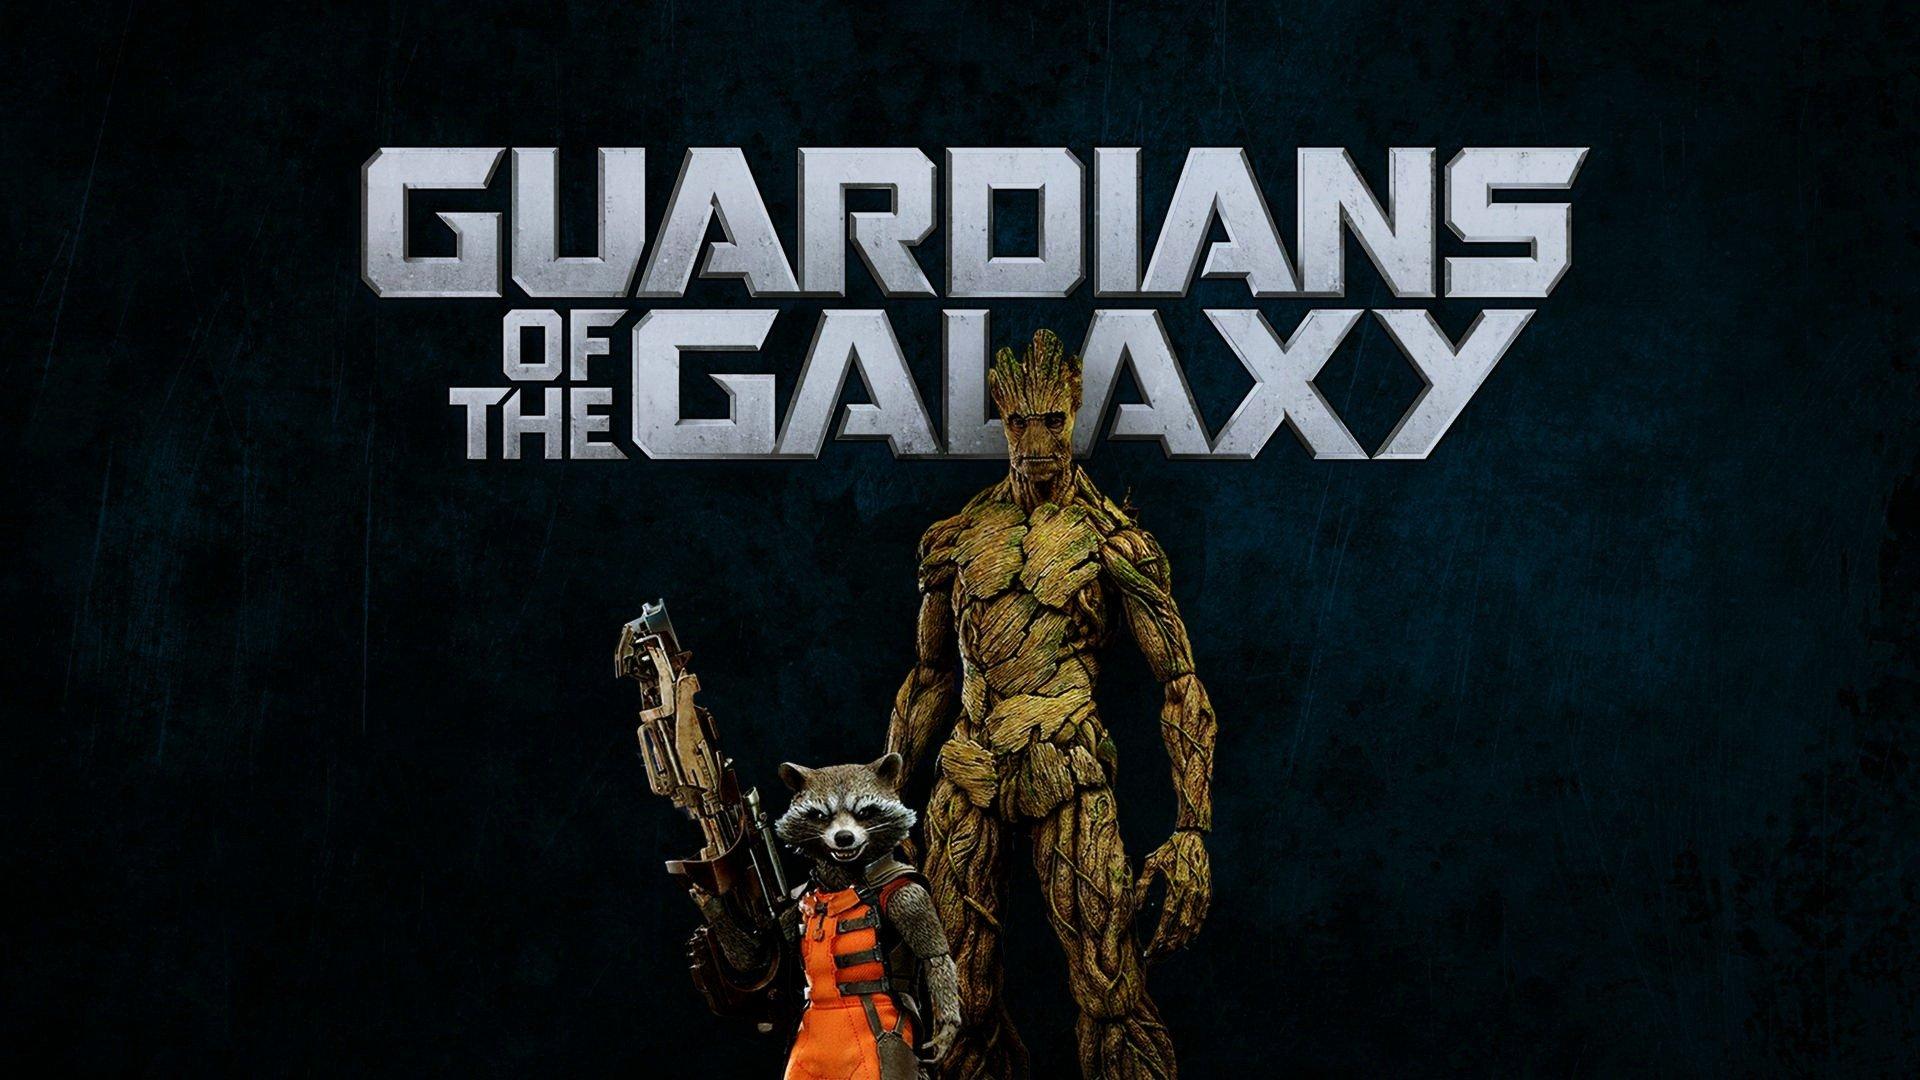 By Stephen Comments Off on Guardians Of The Galaxy Groot Wallpapers 1920x1080